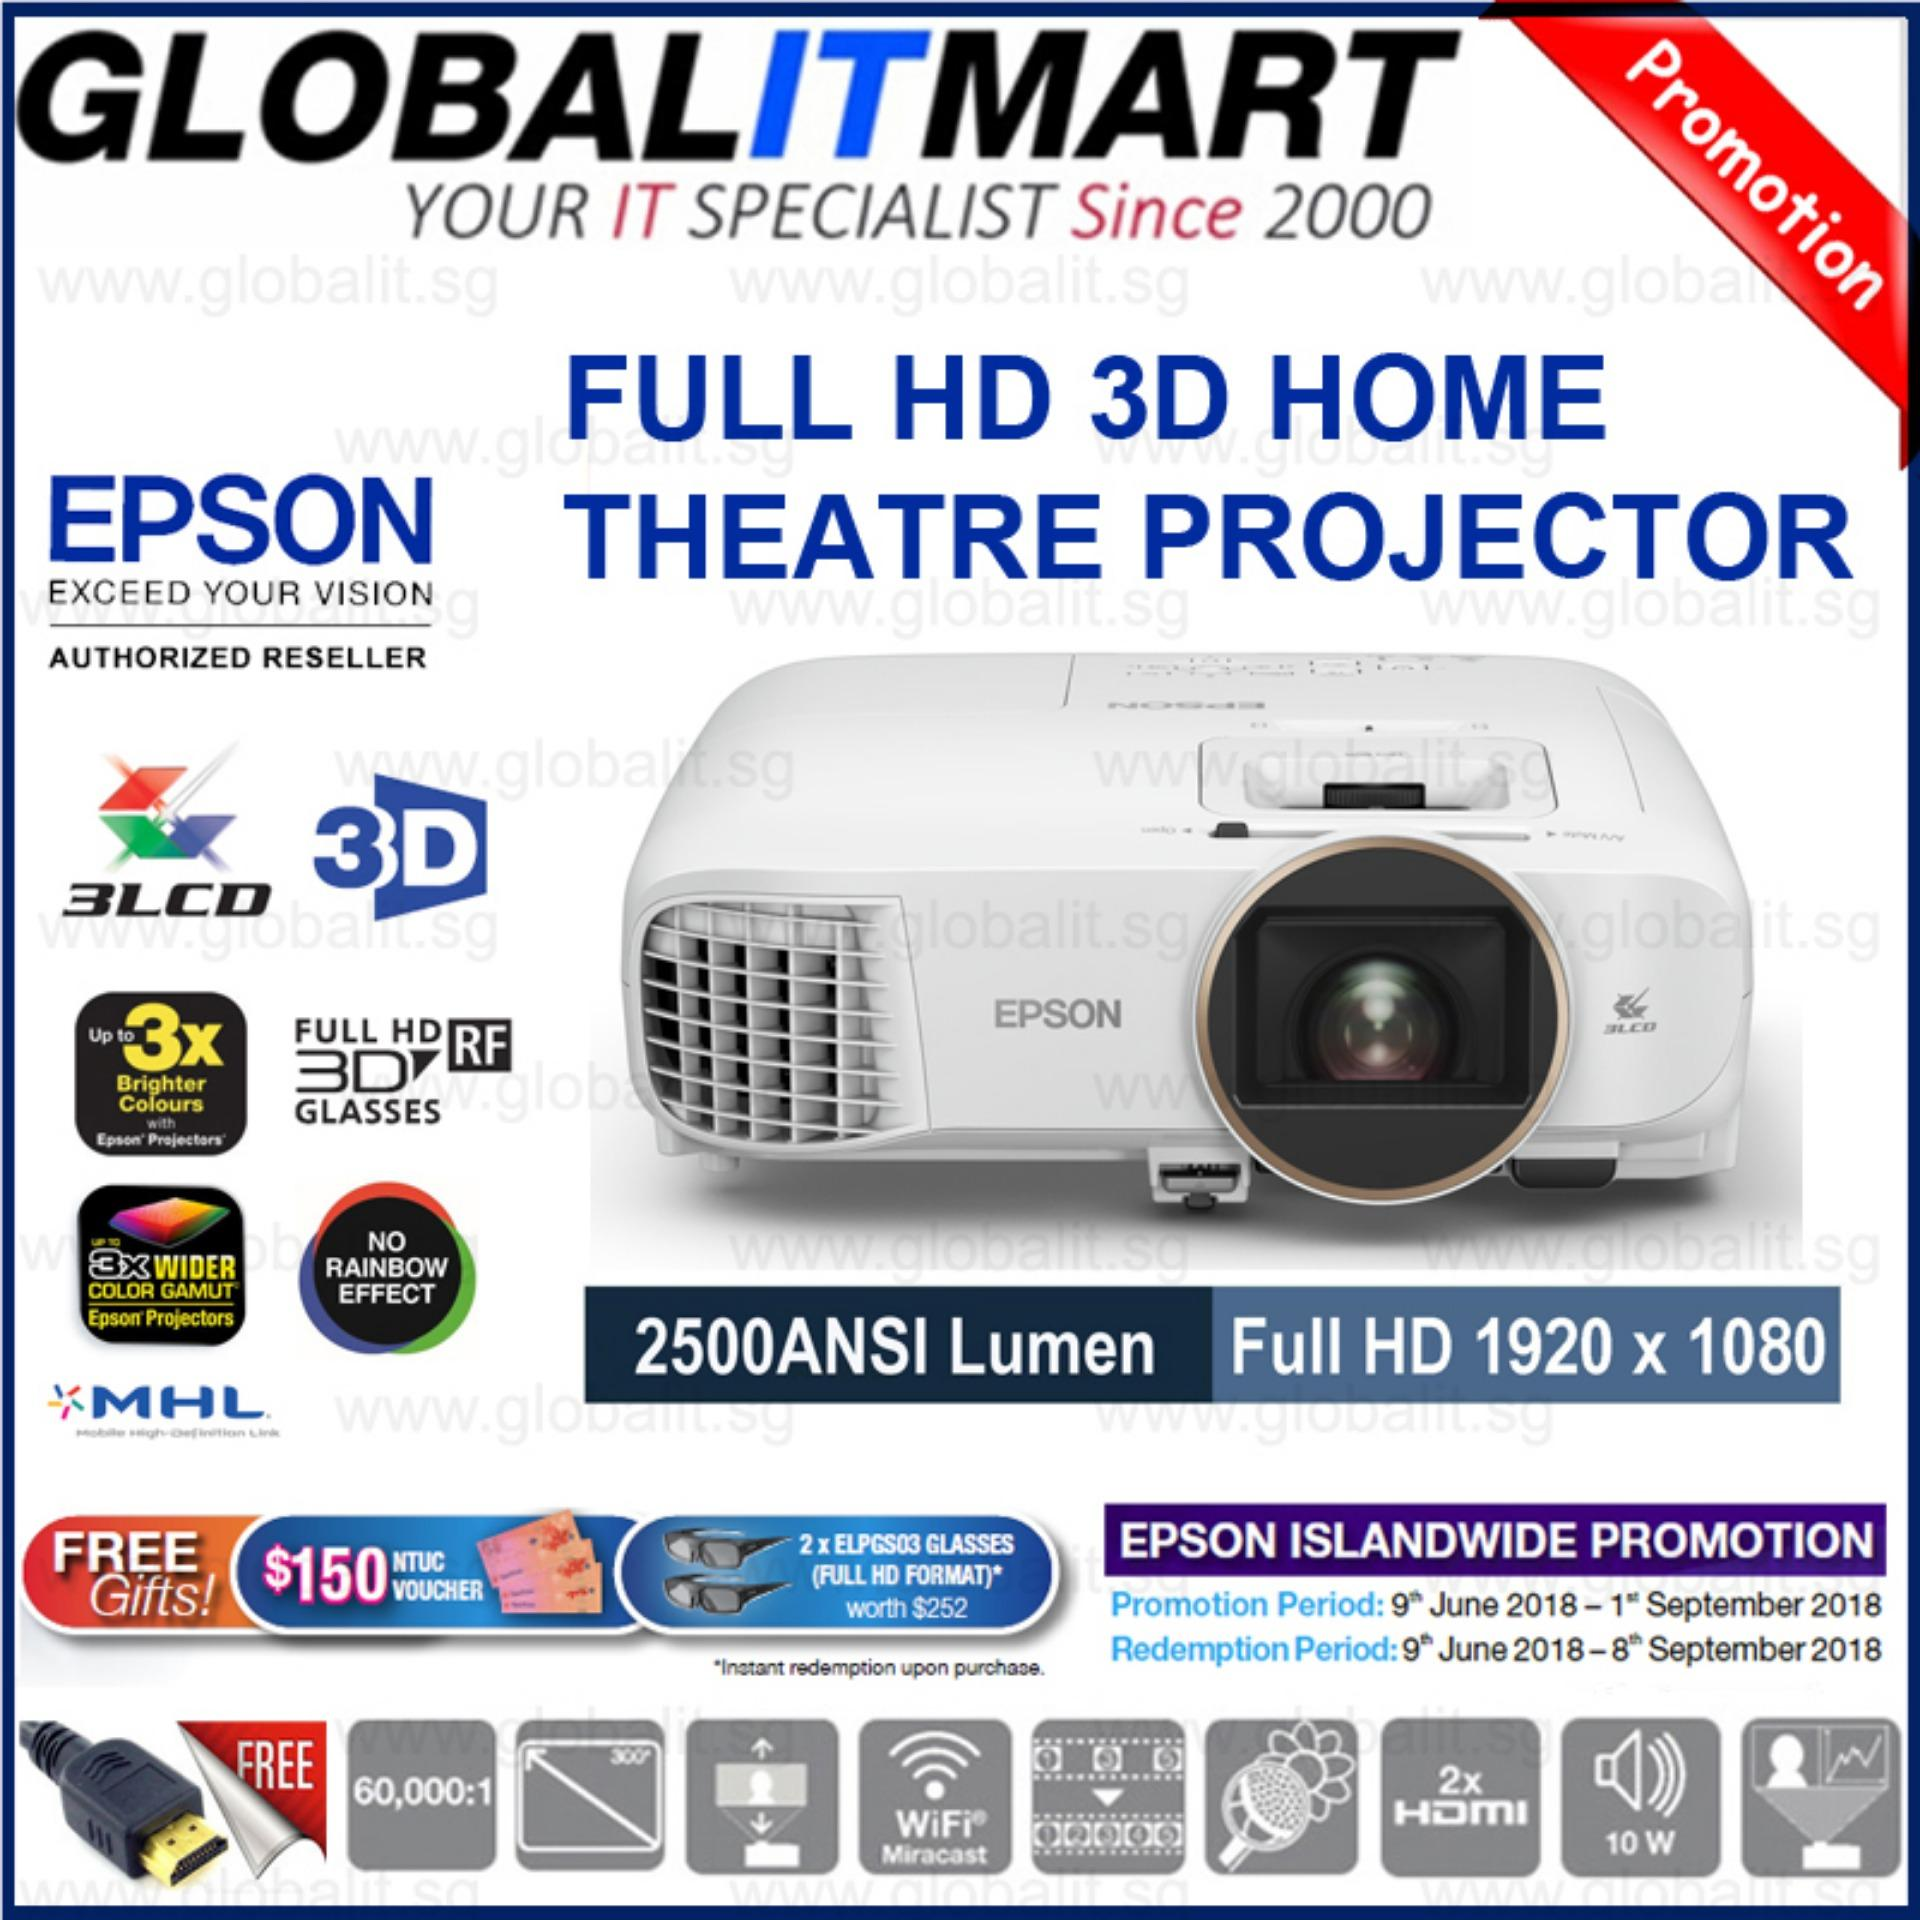 Best Rated Epson Home Theatre Tw5650 Wireless 2D 3D Full Hd 1080P 3Lcd Projector